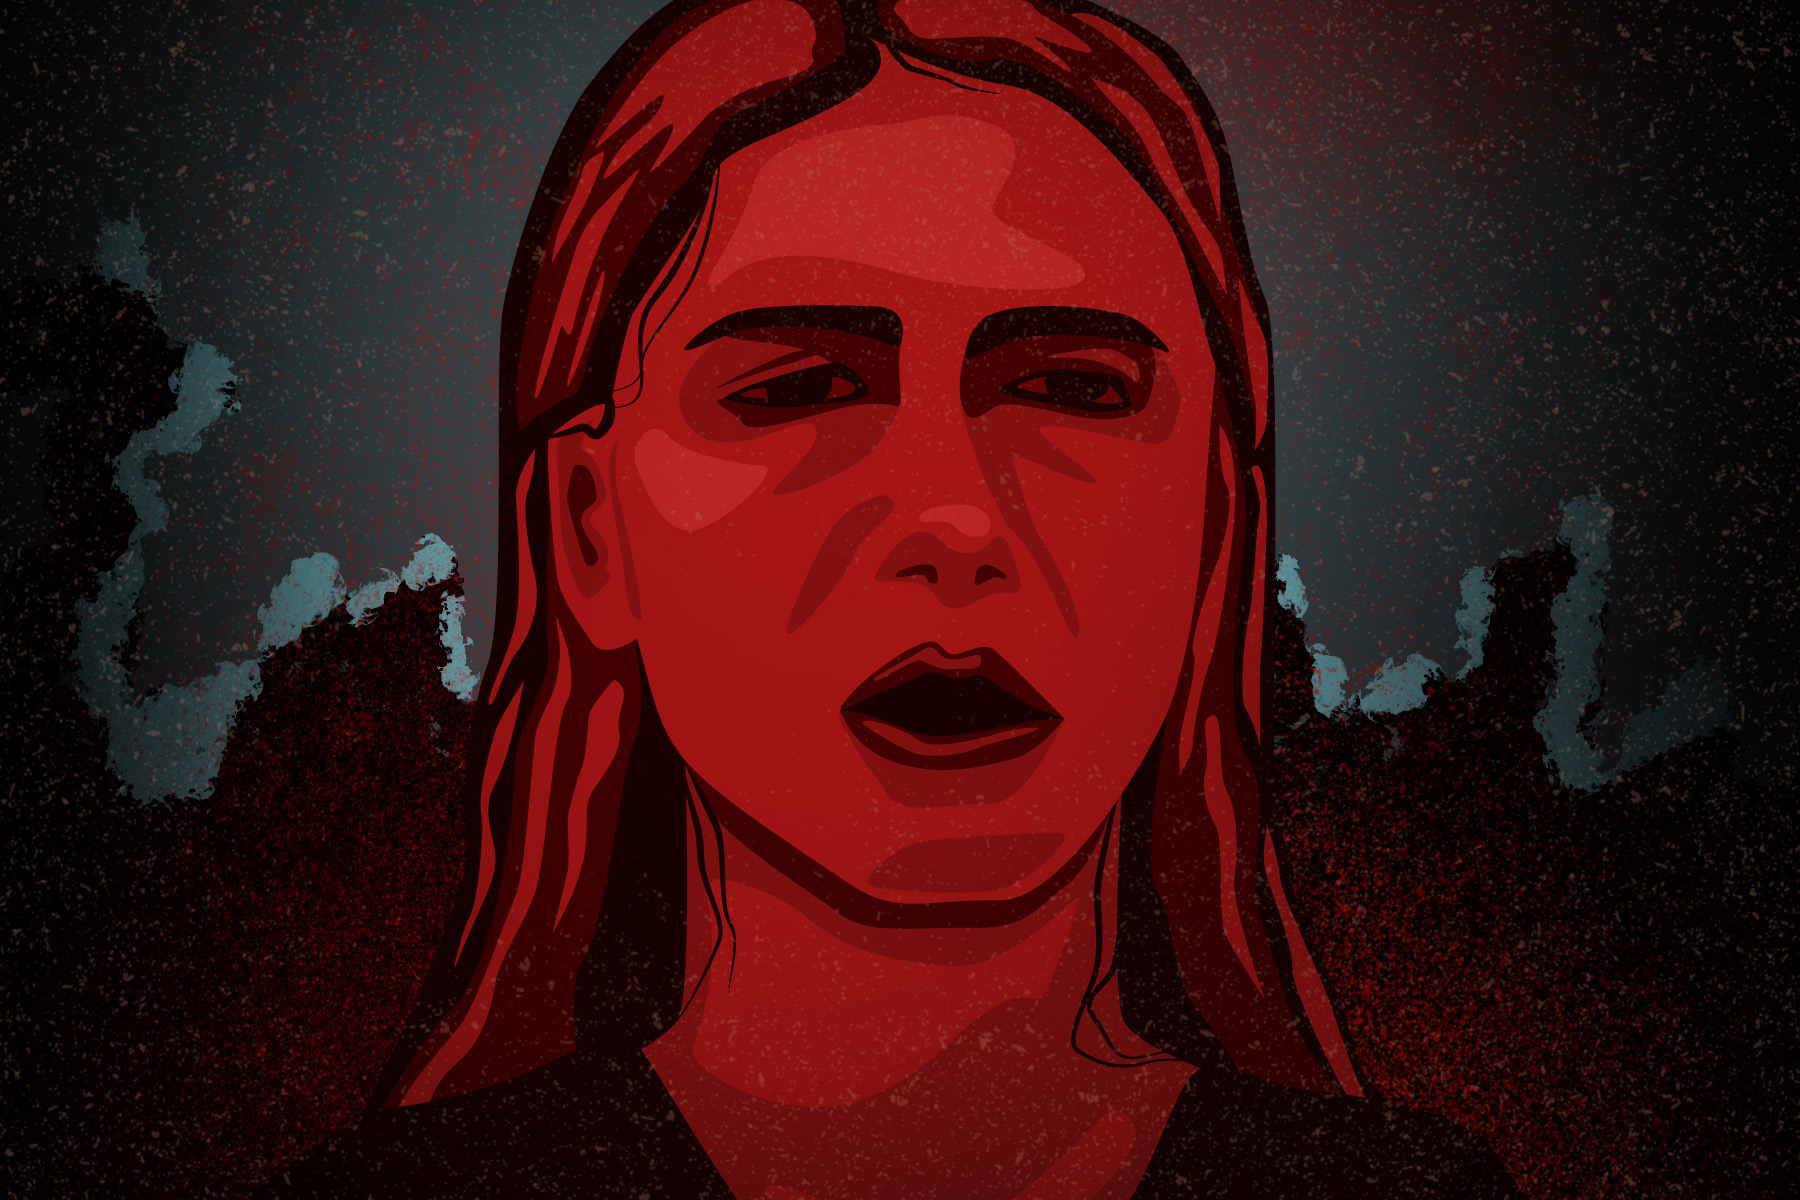 An illustration of Beth from The Night House